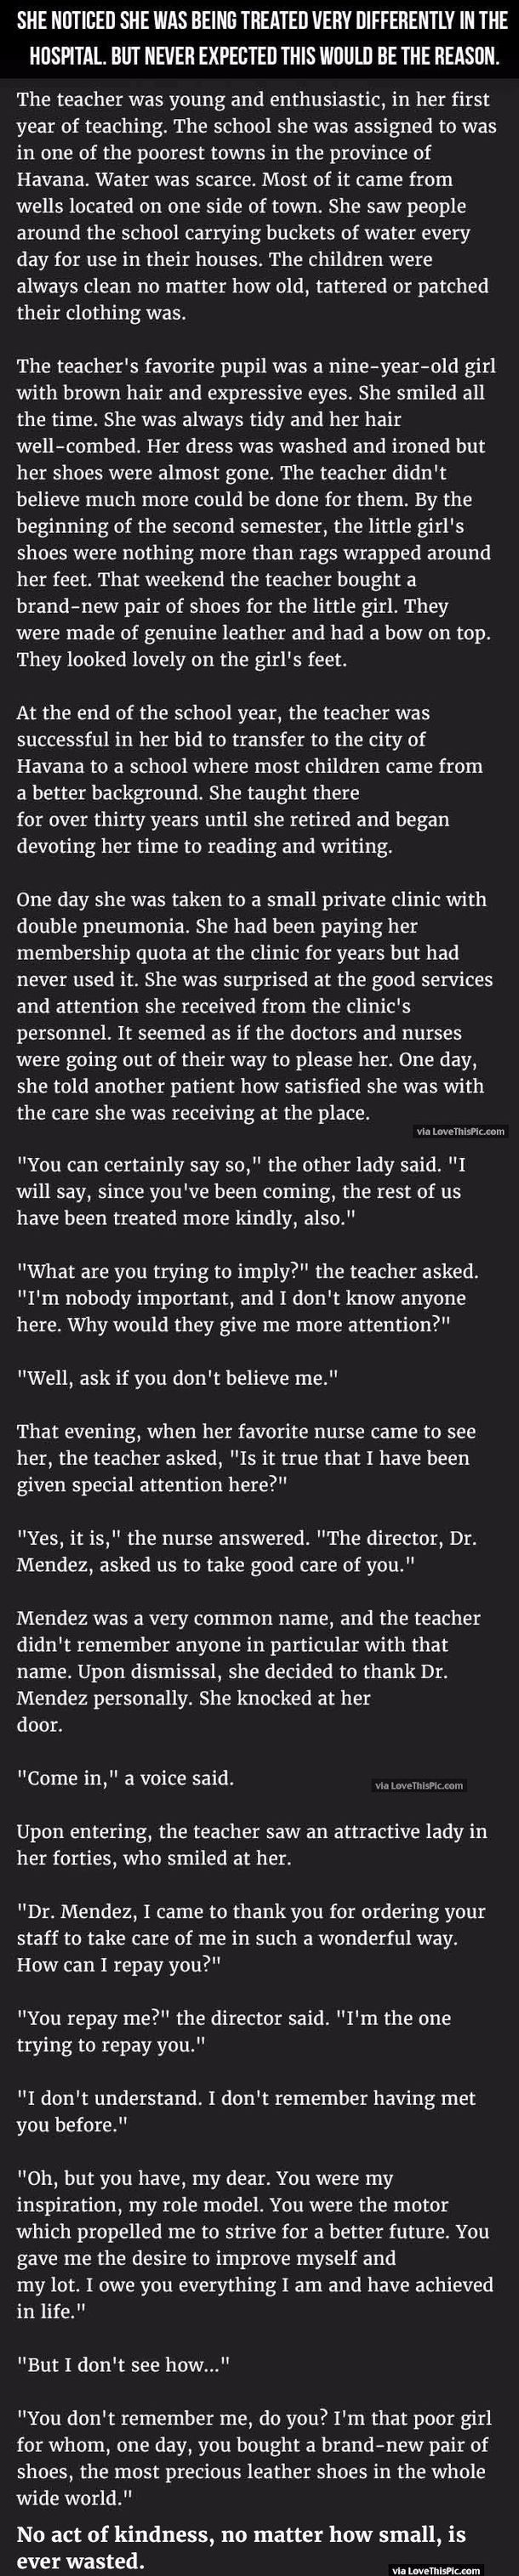 She Noticed She Was Being Treated Very Differently In The Hospital But Never Expected This Would Be The Reason